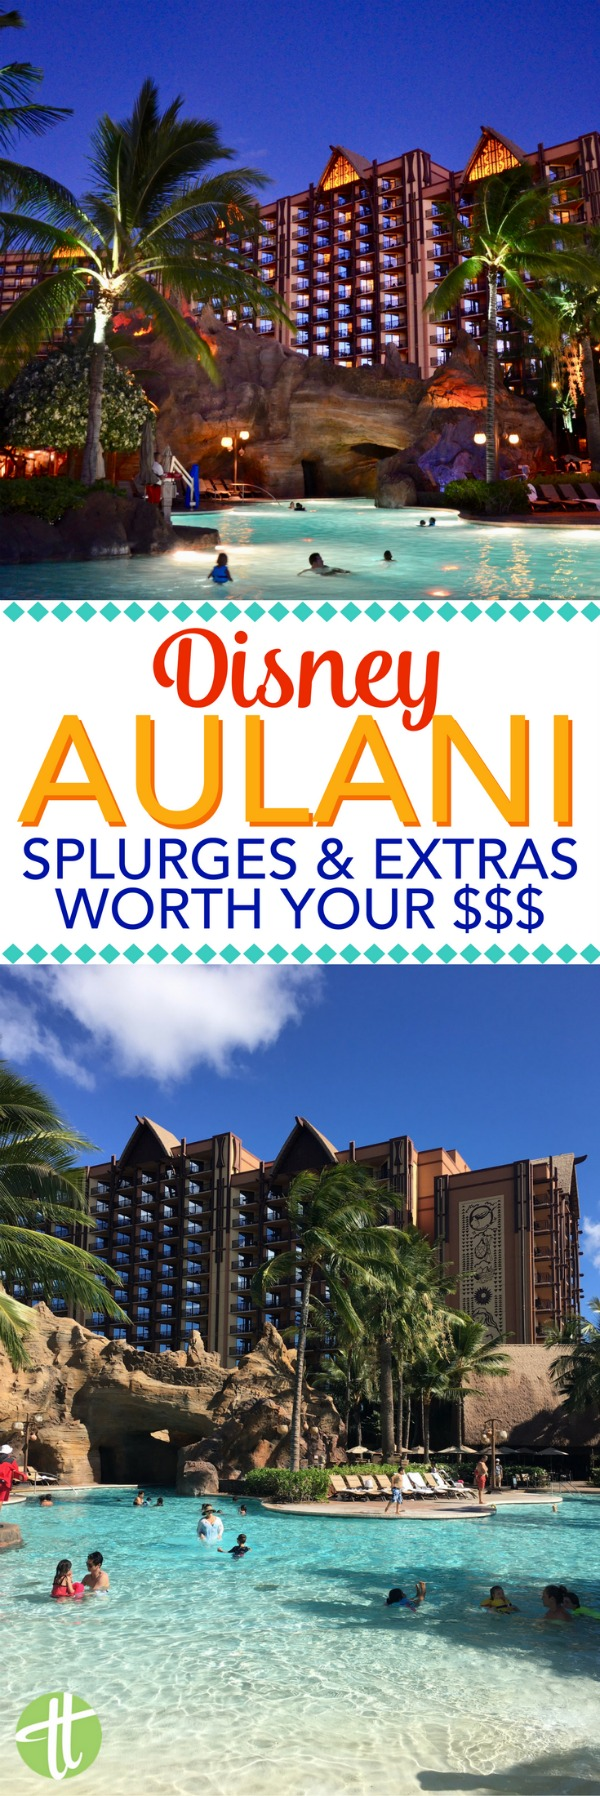 Planning a vacation to Aulani, a Disney Resort & Spa, in O'ahu Hawaii? Find out what splurge activities, and dining are worth fitting into your vacation budget. A look at the luau, character meals, room upgrades, spa, excursions, and more.